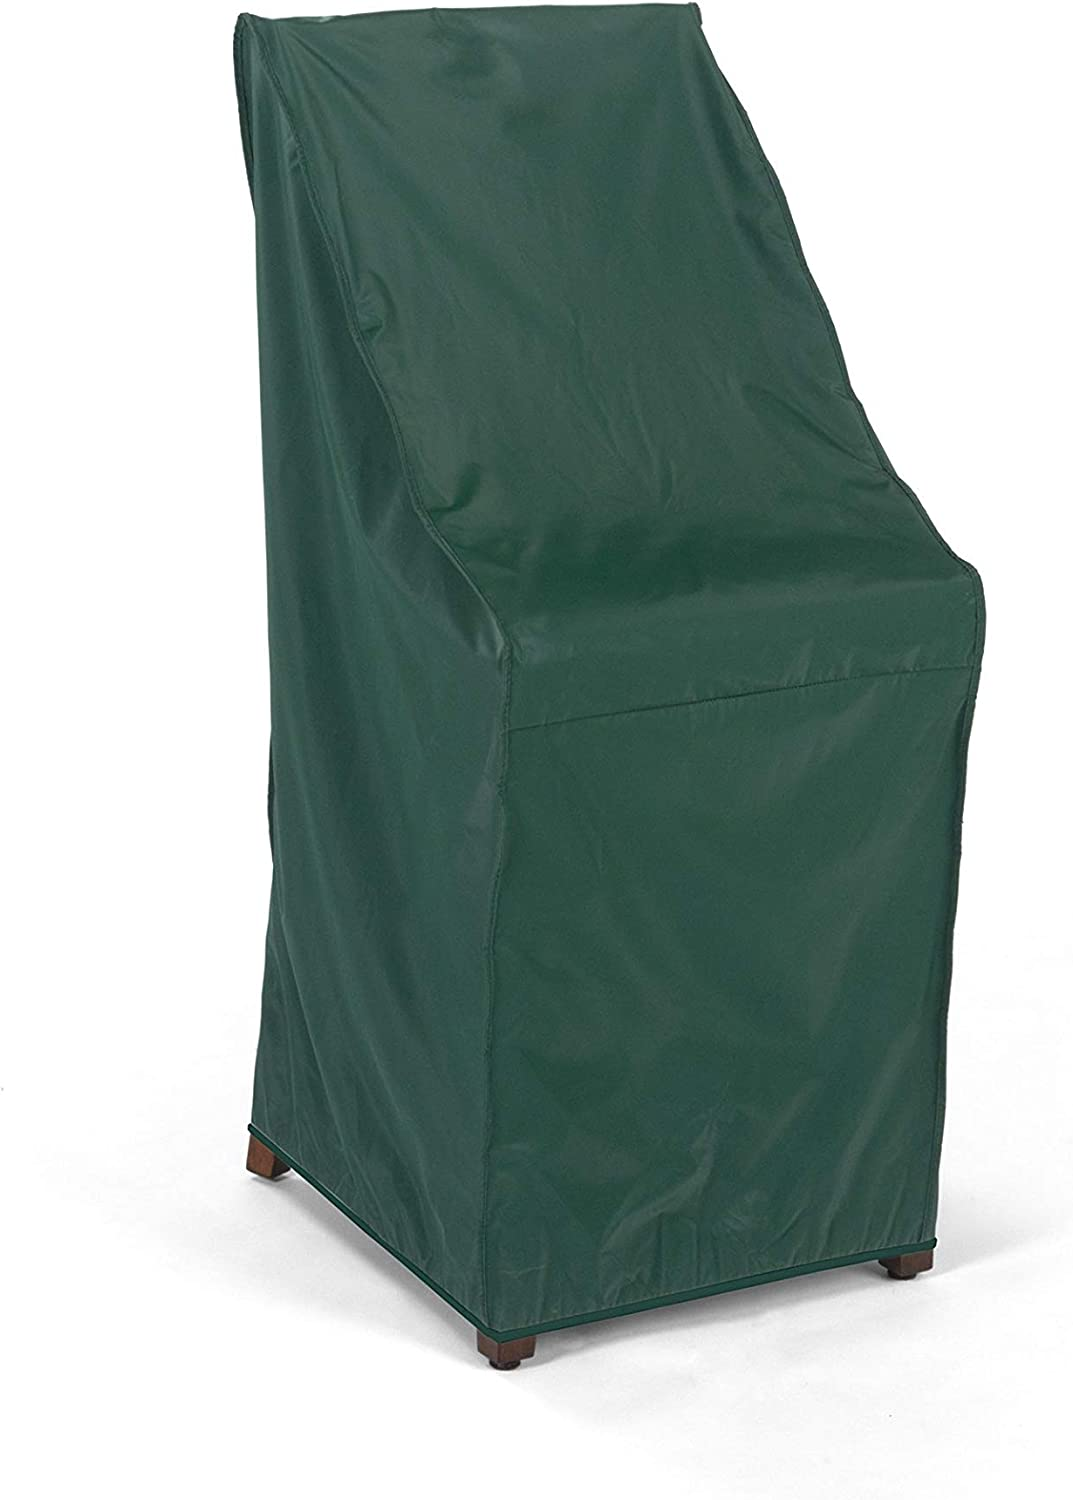 Covermates Stacking Chair Cover 28W x 34D x 52H Classic Collection 2 YR Warranty Year Around Protection – Green